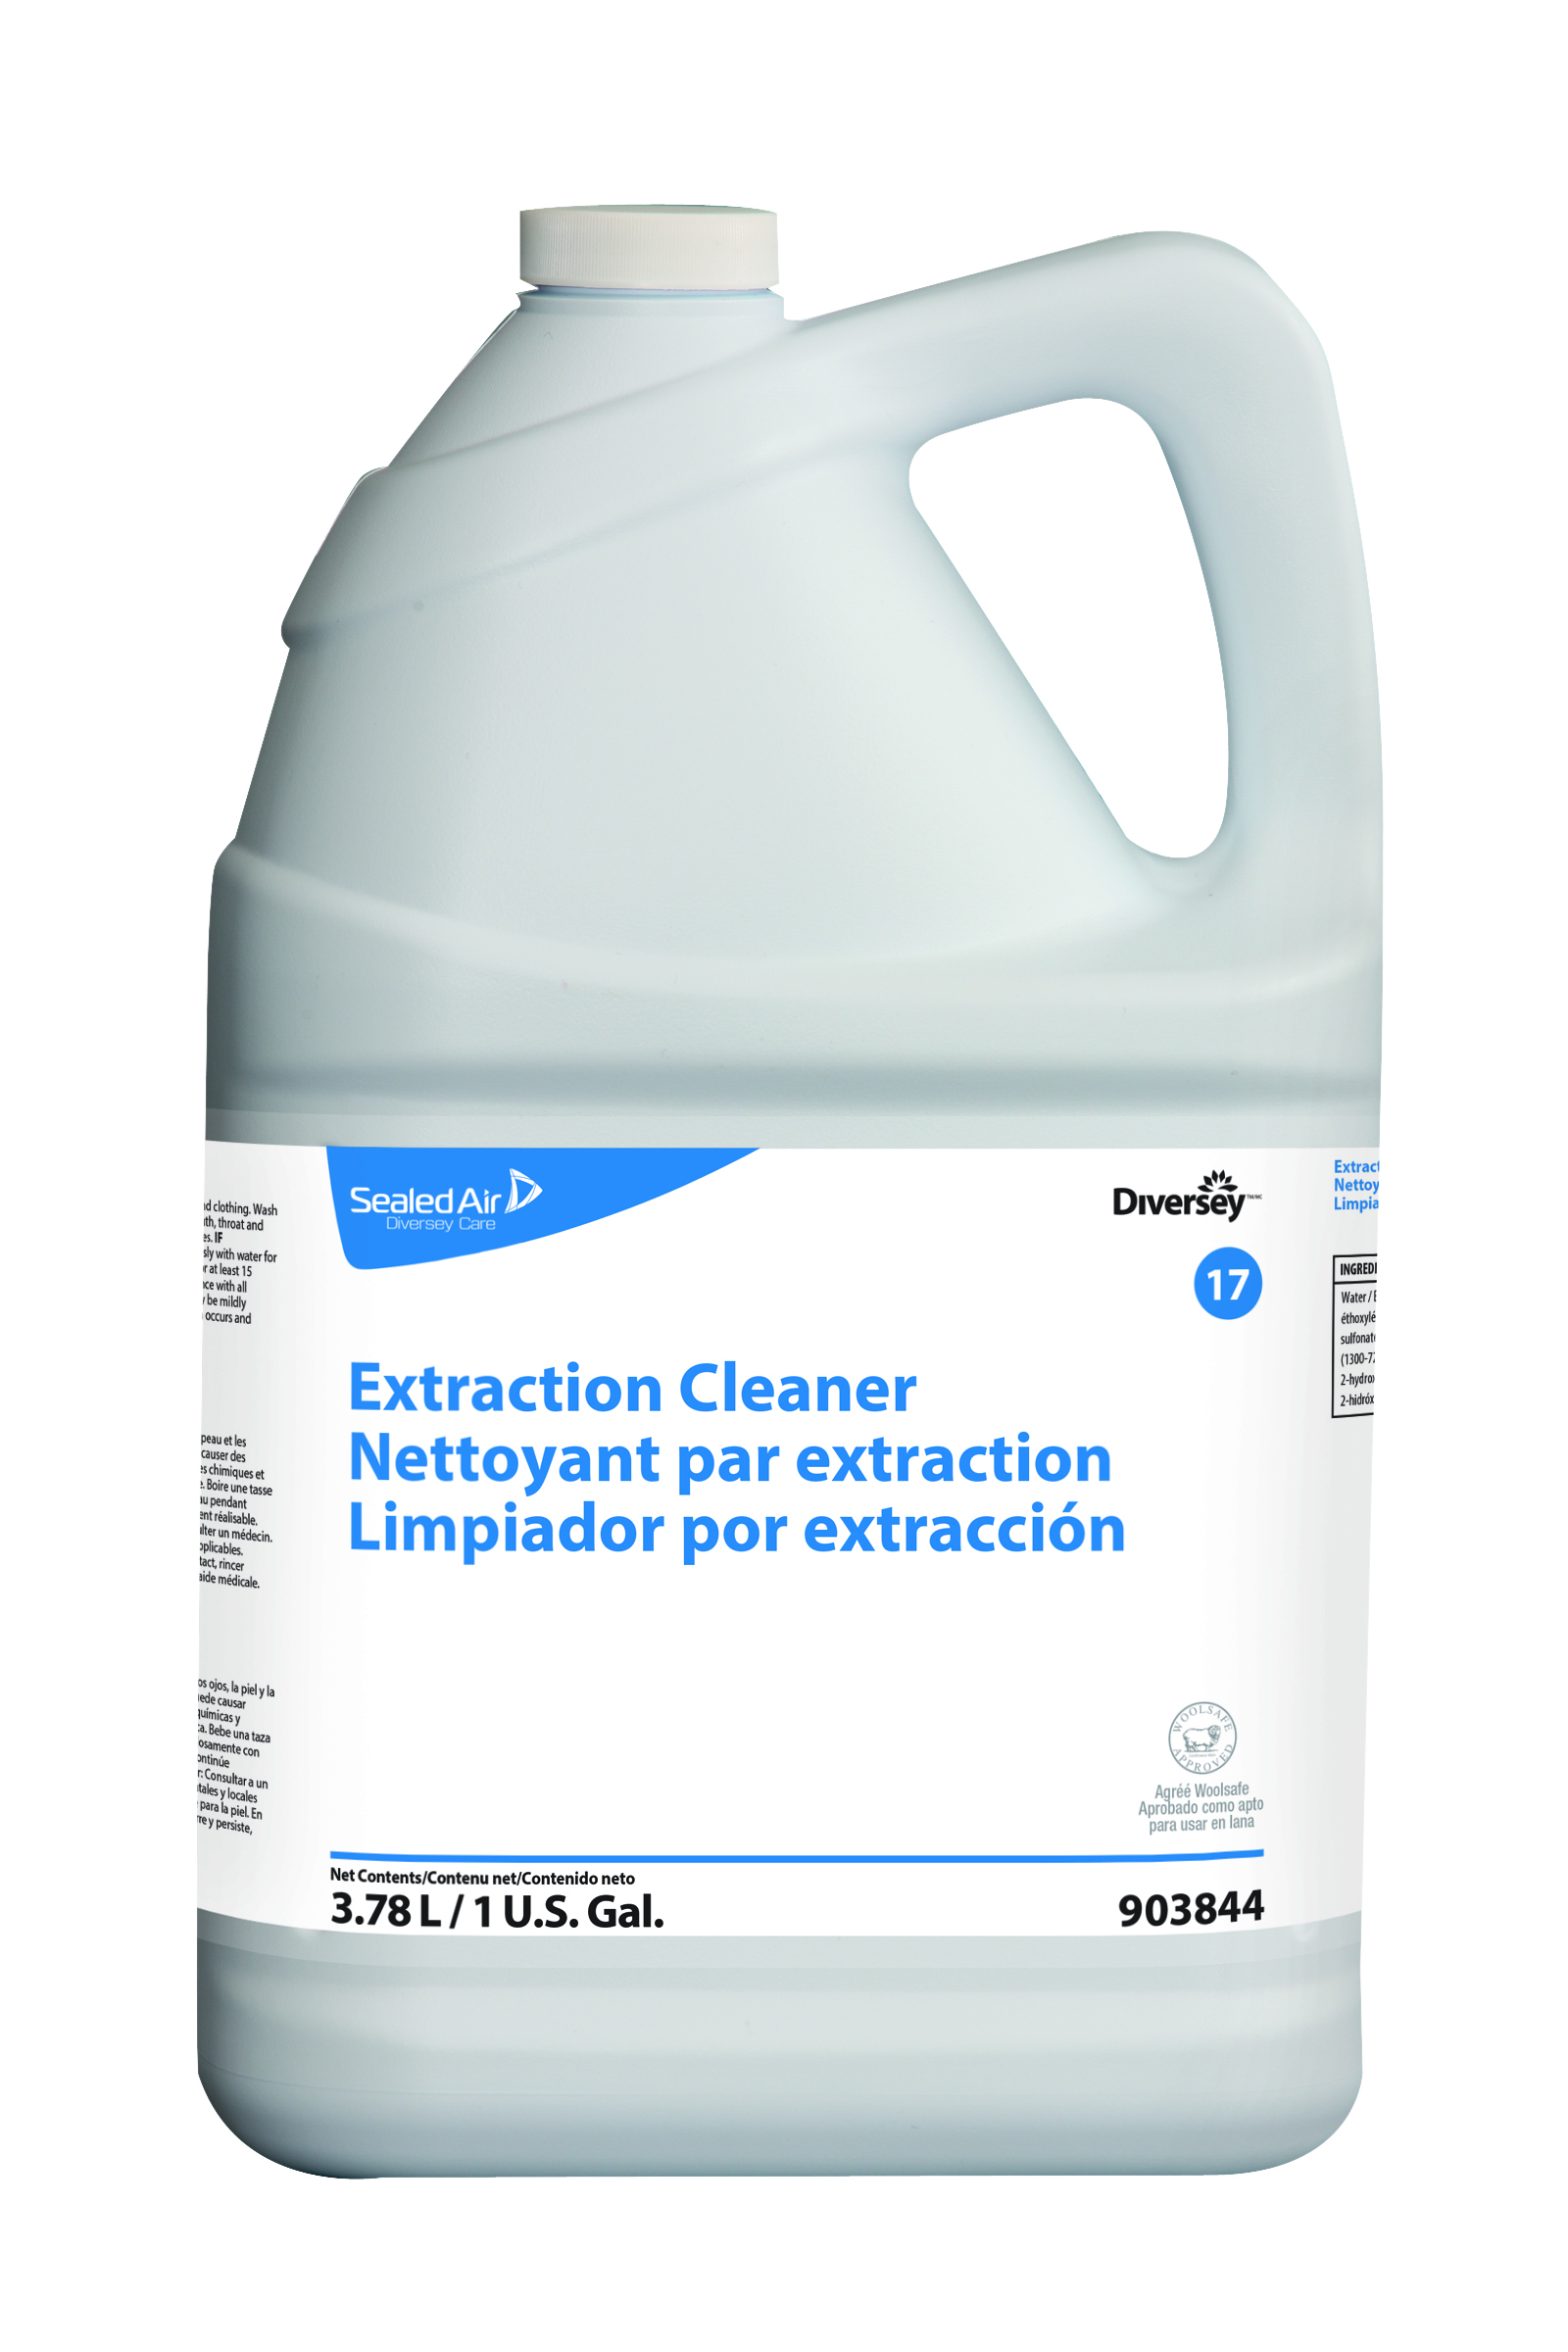 PicturesLogo/EXTRACTION CLEANERS.jpg